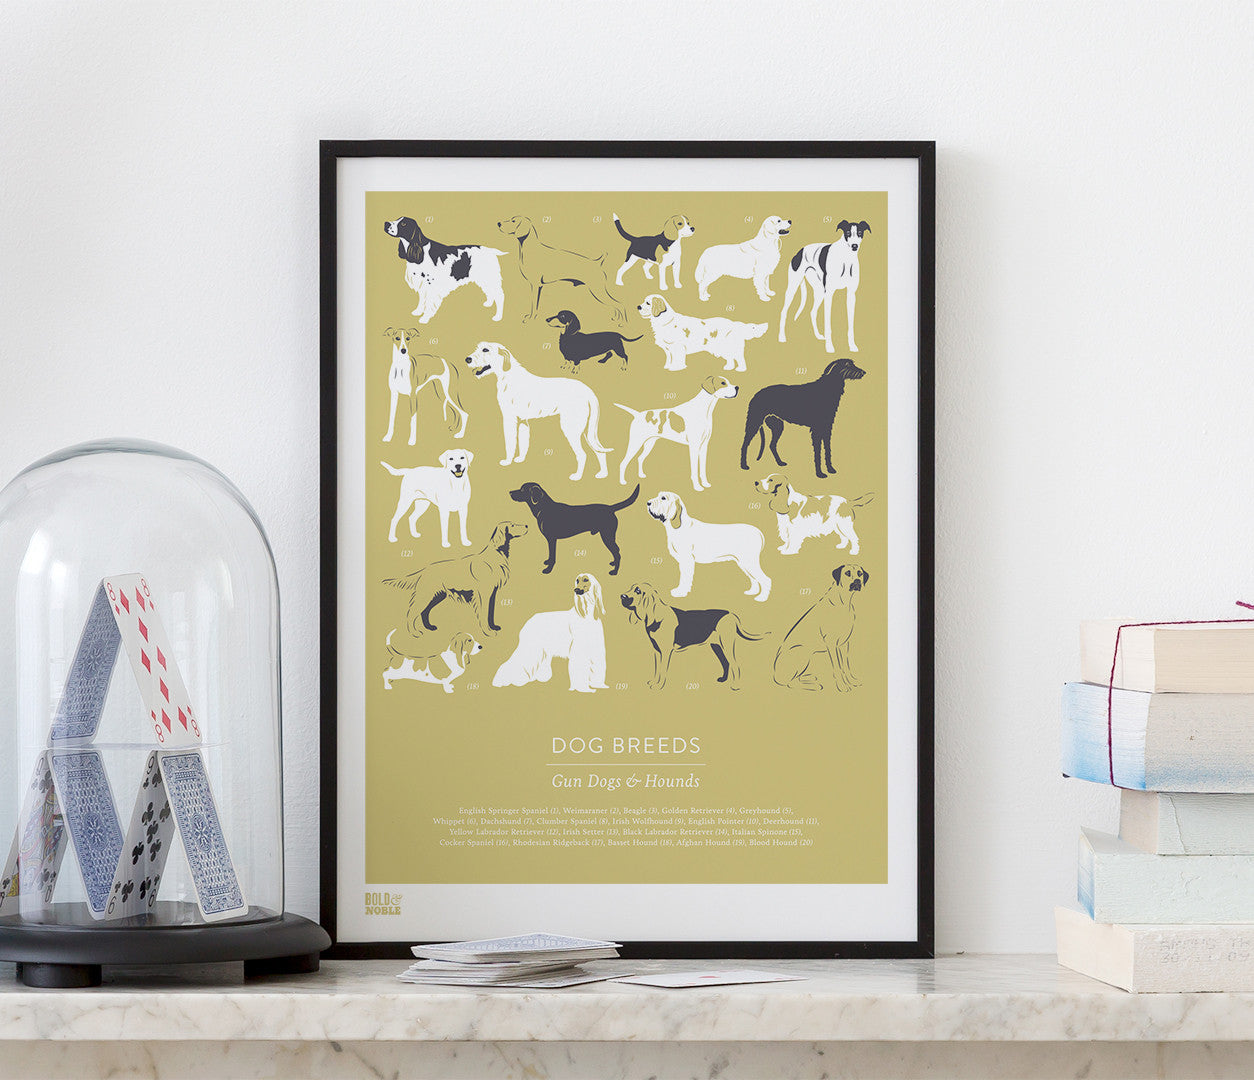 Wall Art ideas: Economical Screen Prints, Dog Breeds, Gun Dogs and Hounds in light straw